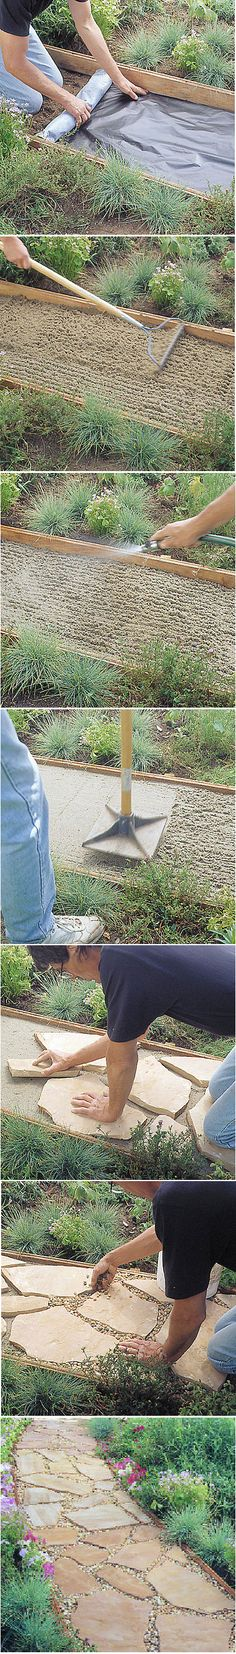 DIY Flagstone Path Tutorial #Wege anlegen #NWL